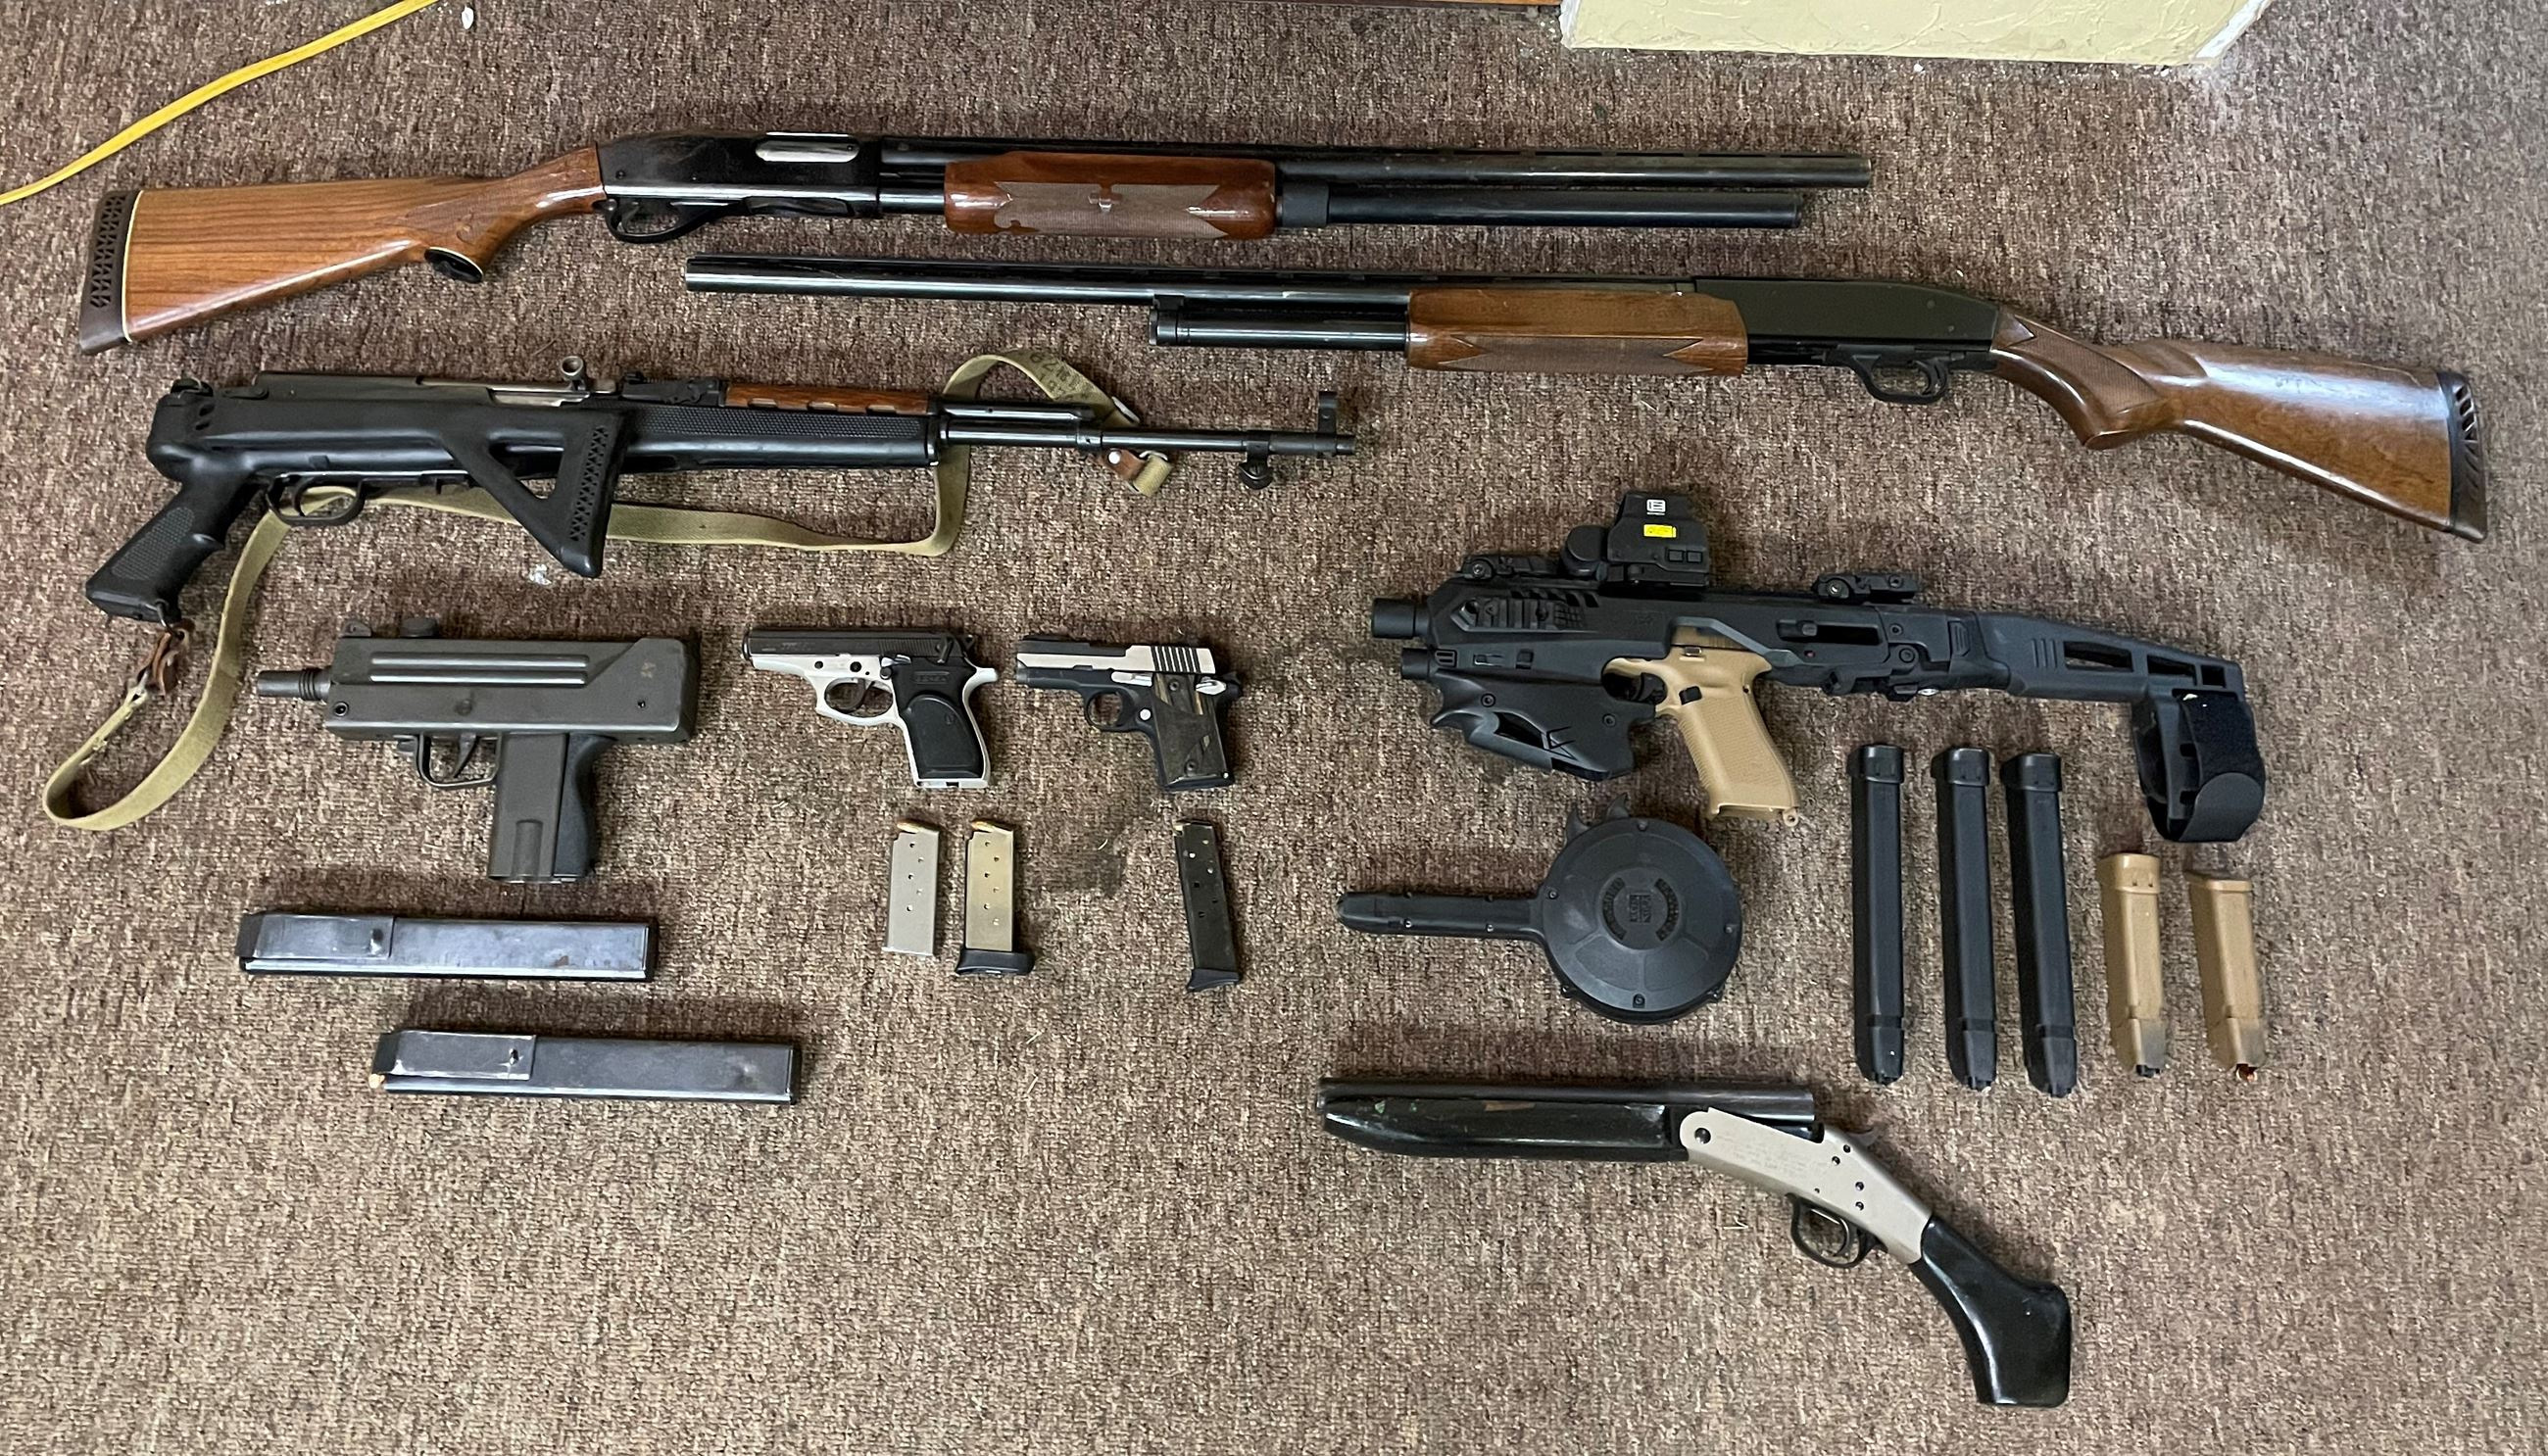 Eight illegal firearms and high capacity magazines